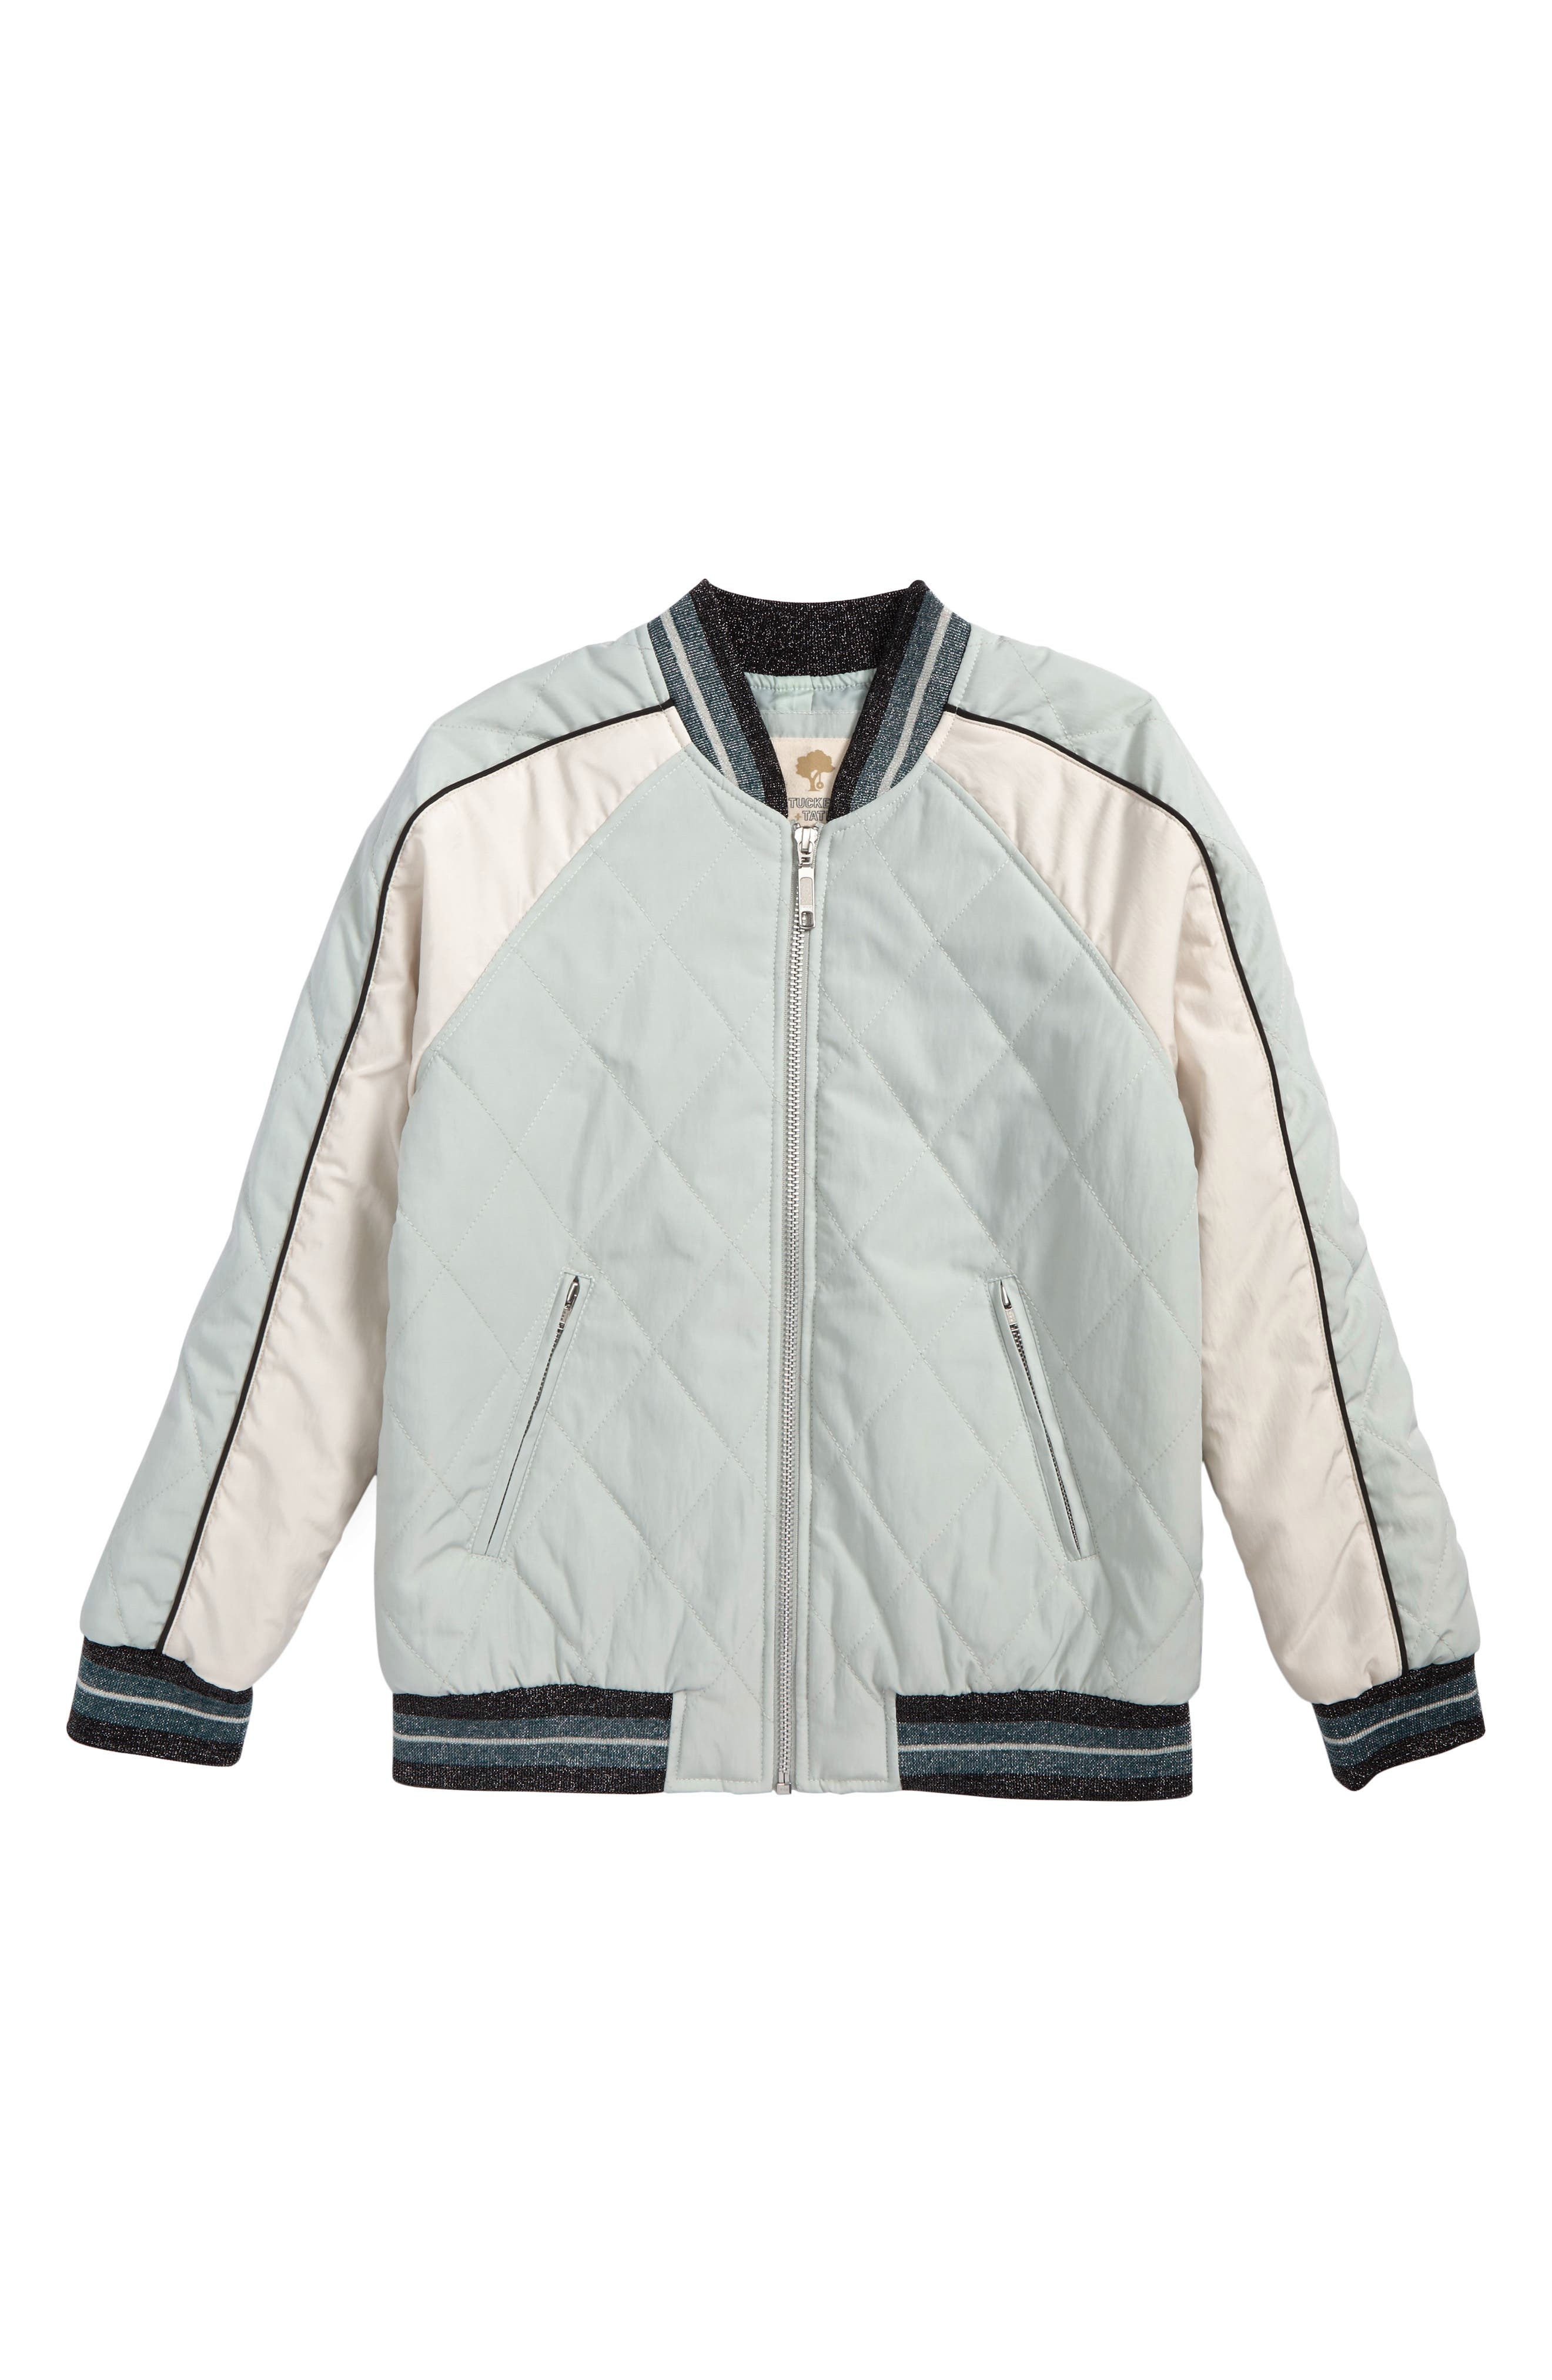 Colorblock Bomber Jacket,                         Main,                         color, 310